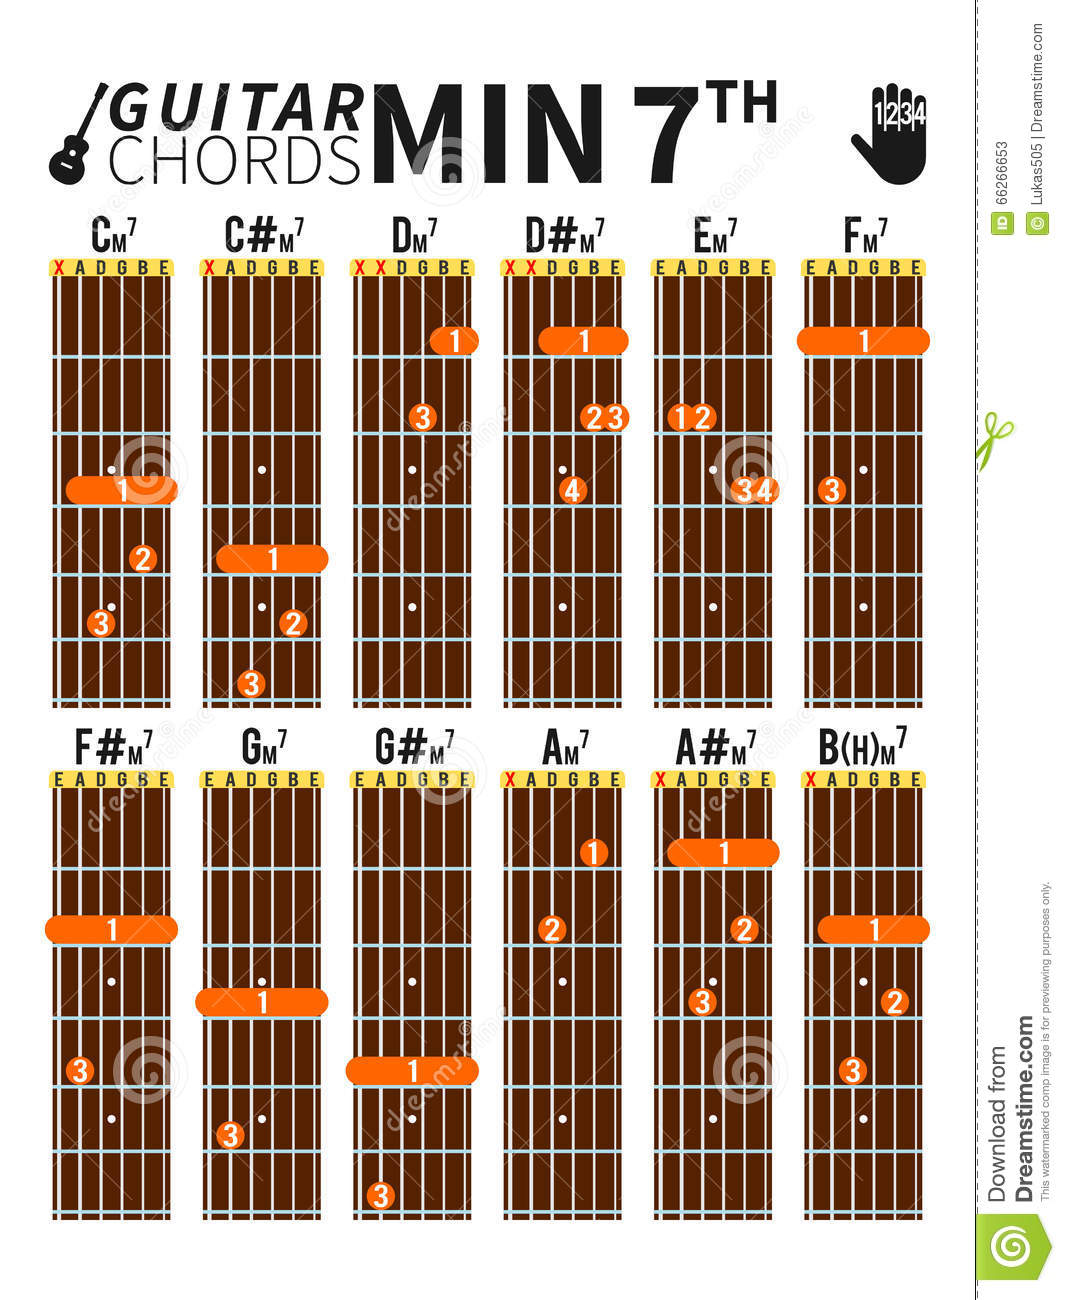 Minor Seventh Chords Chart For Guitar With Fingers Position Stock